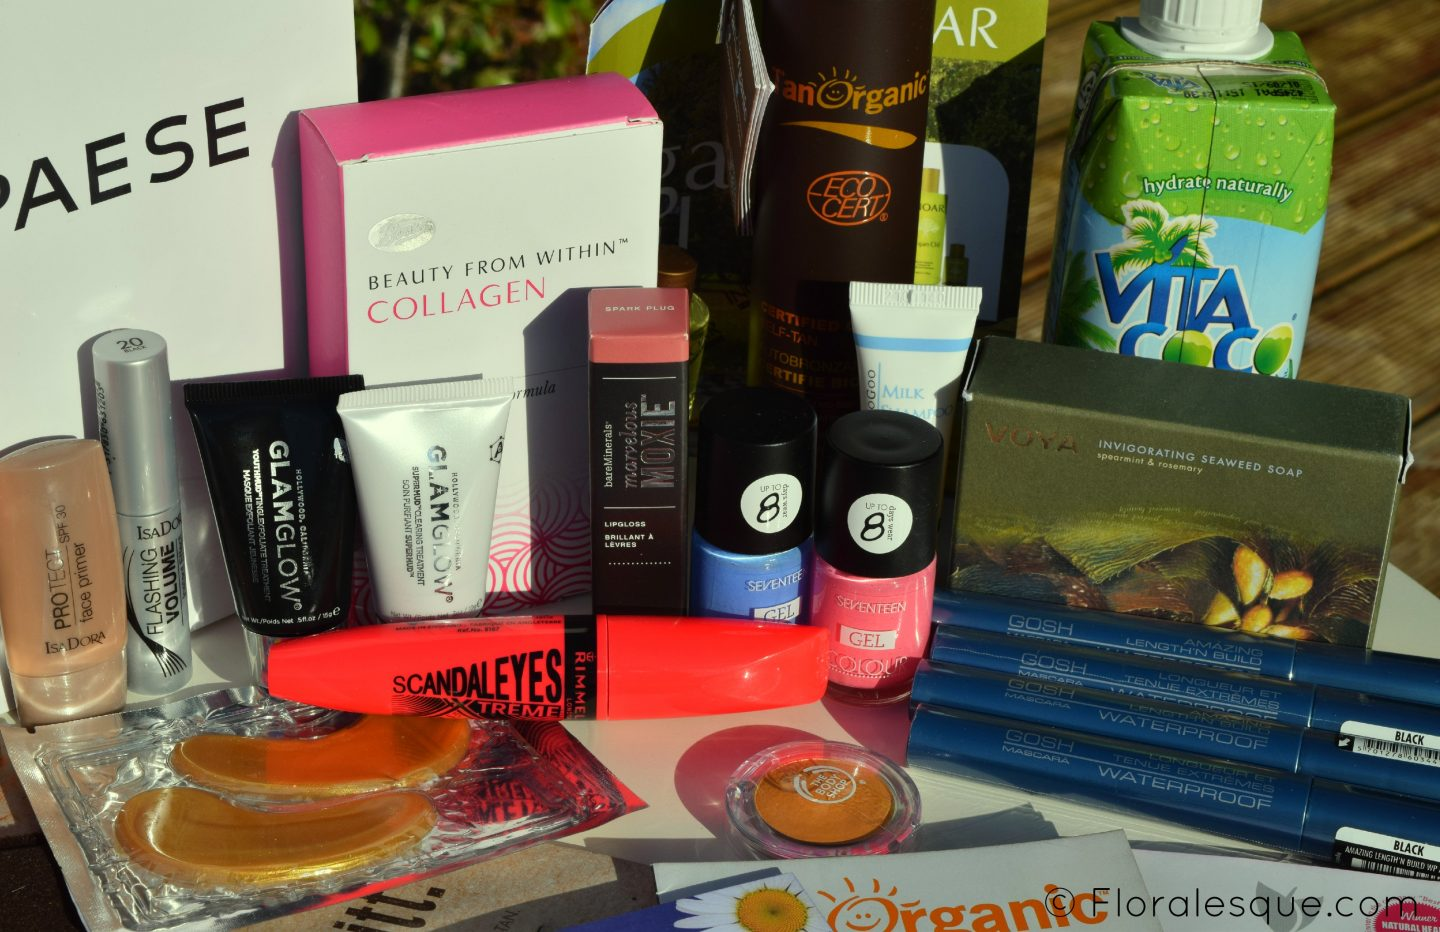 Goodie Bag TanOrganic Beauty Blog Awards